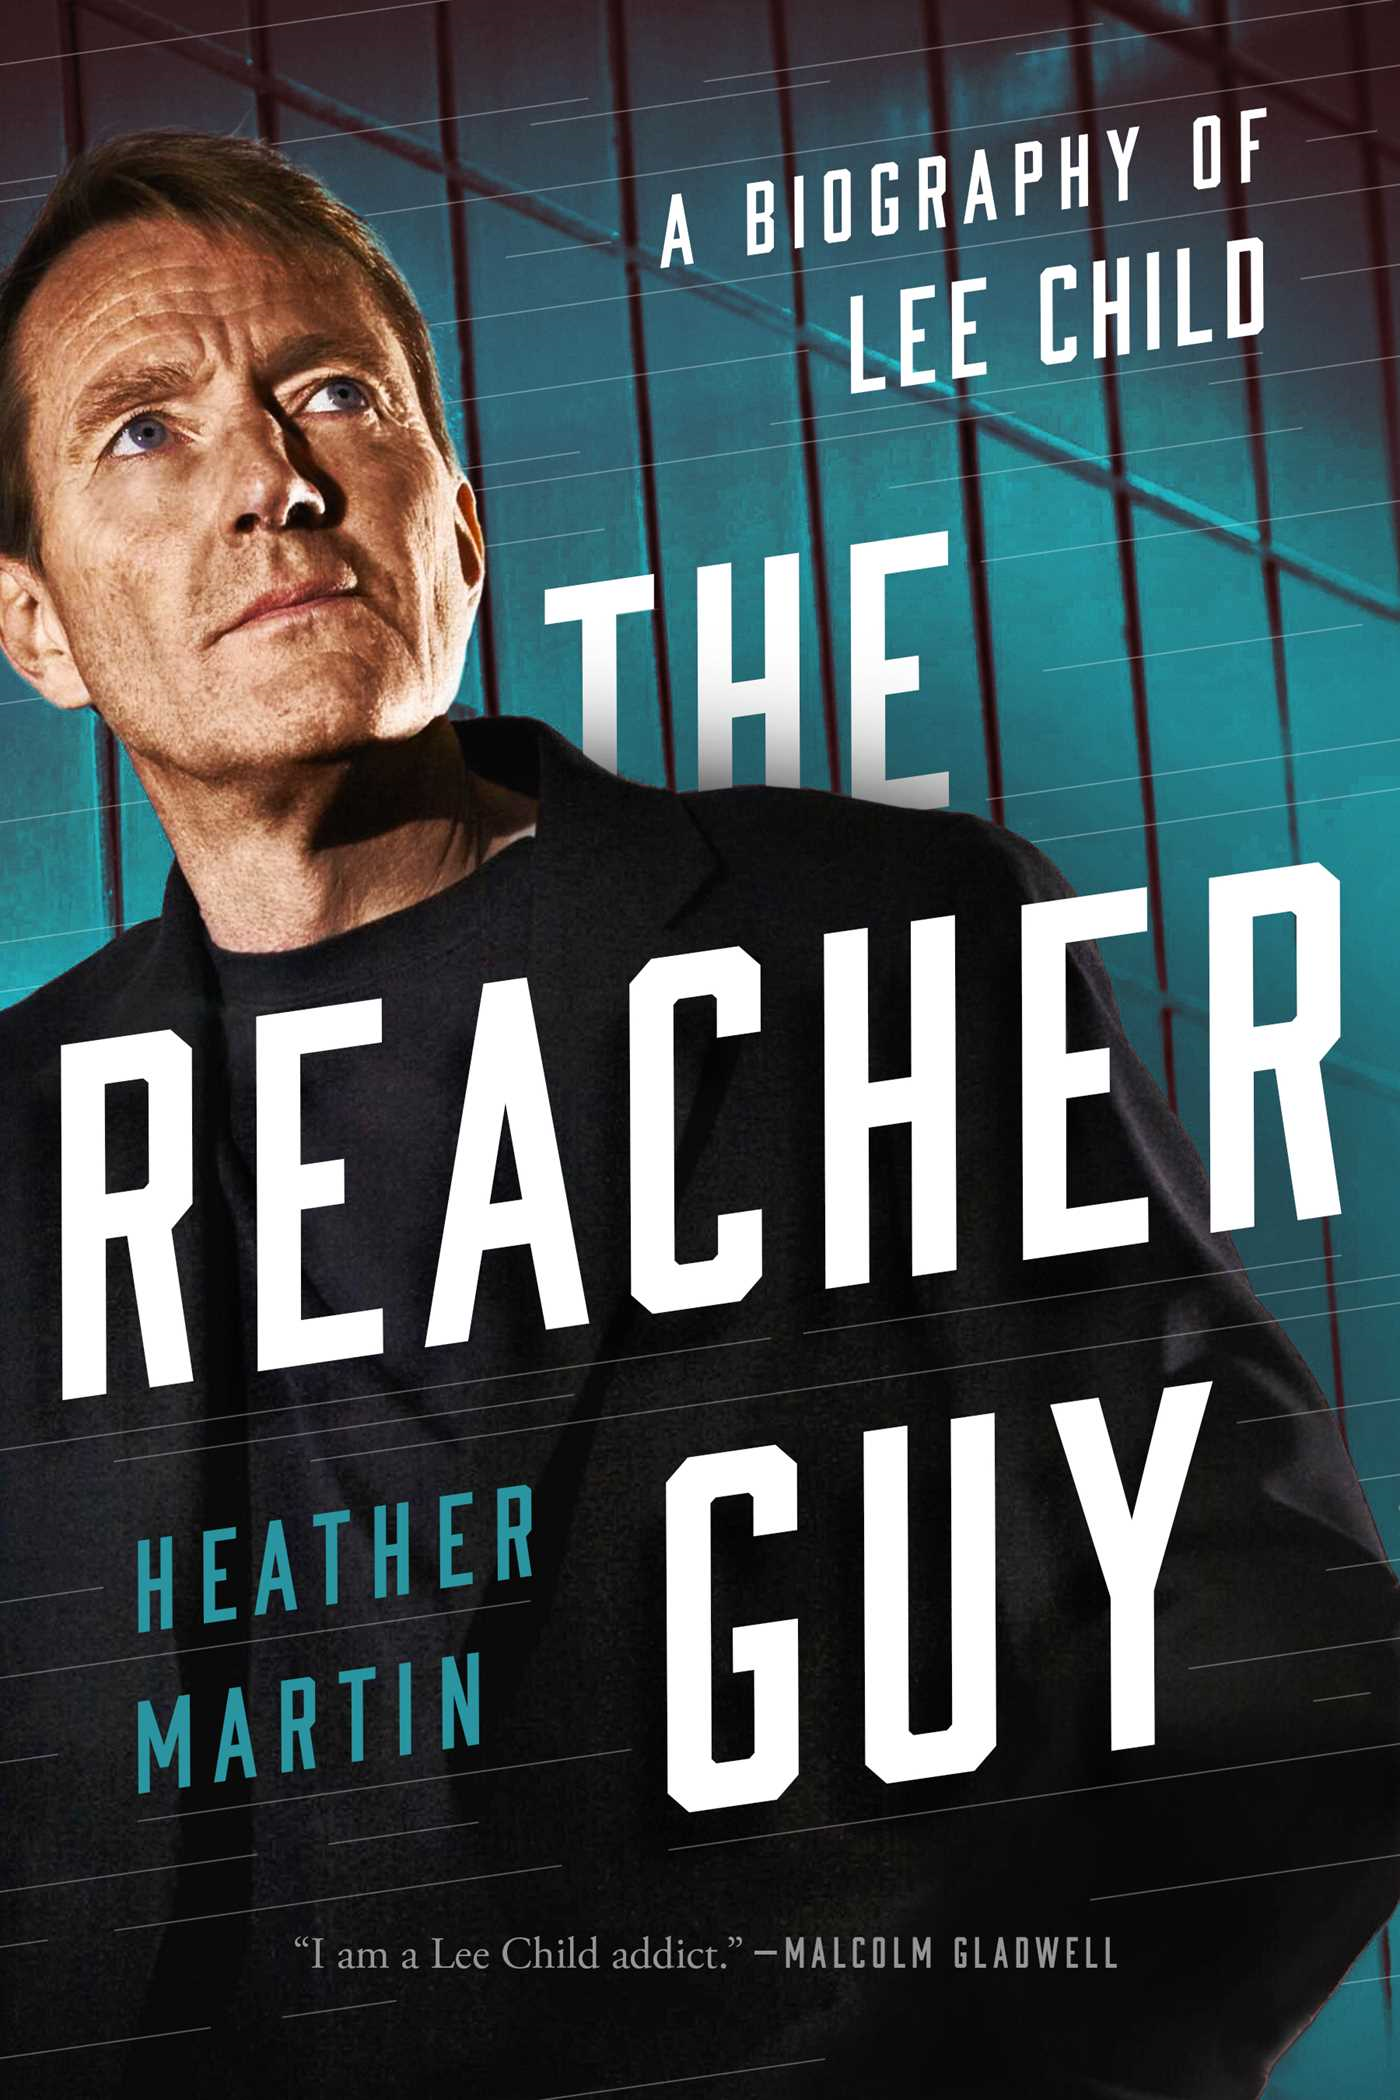 The Reacher Guy